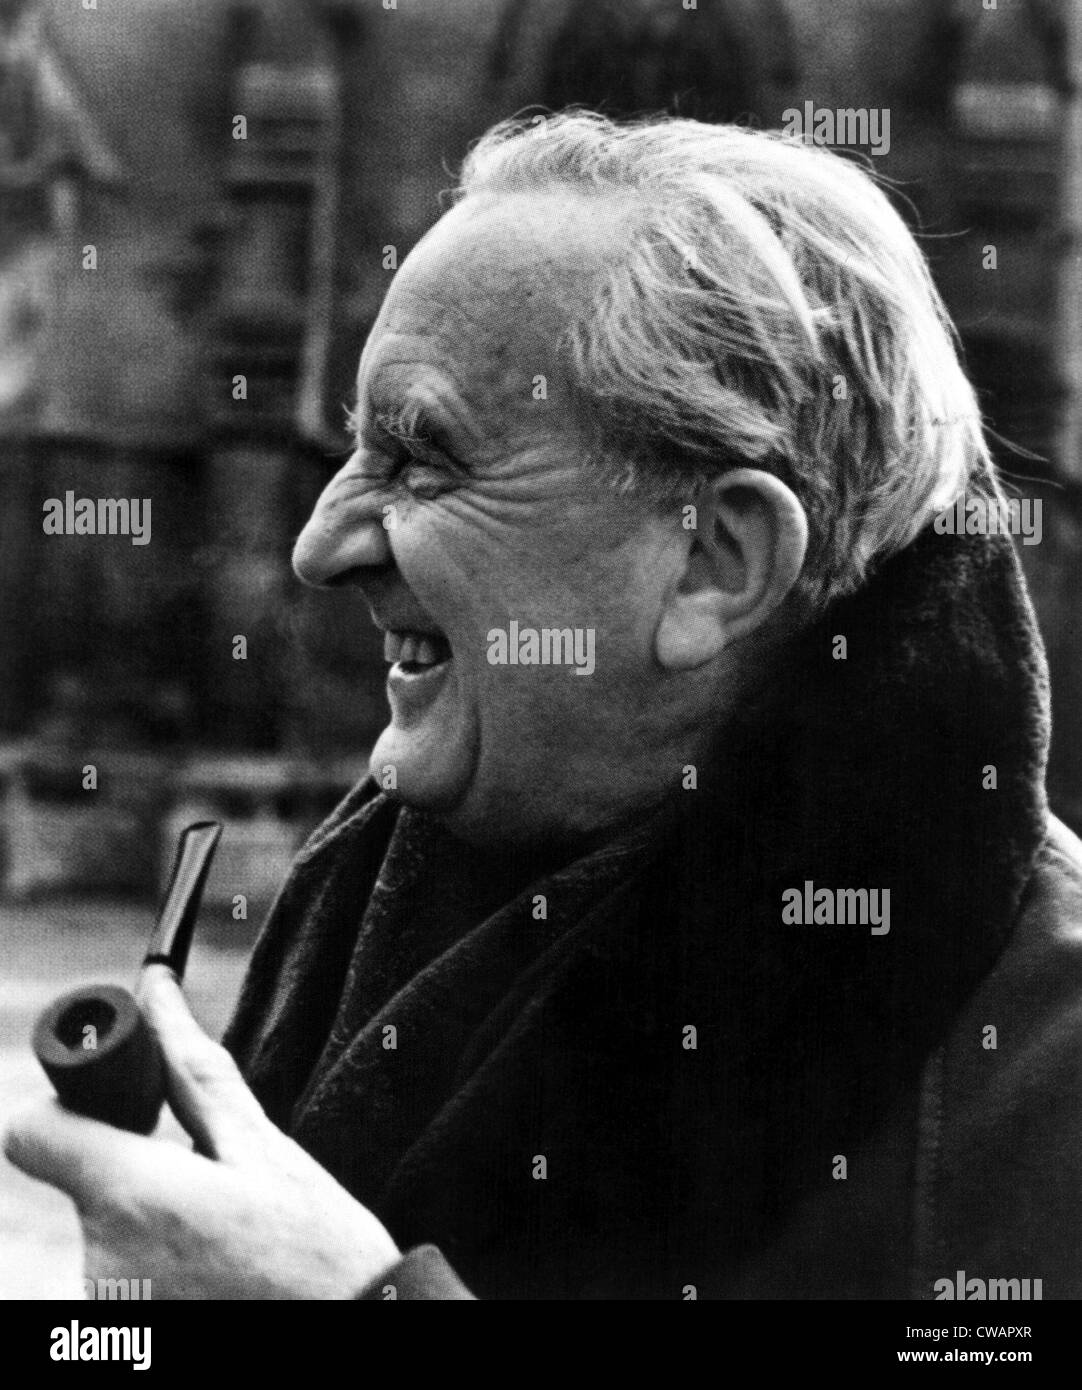 J R Smith Links Black Friday To Slavery On Instagram: Jrr Tolkien Stock Photos & Jrr Tolkien Stock Images